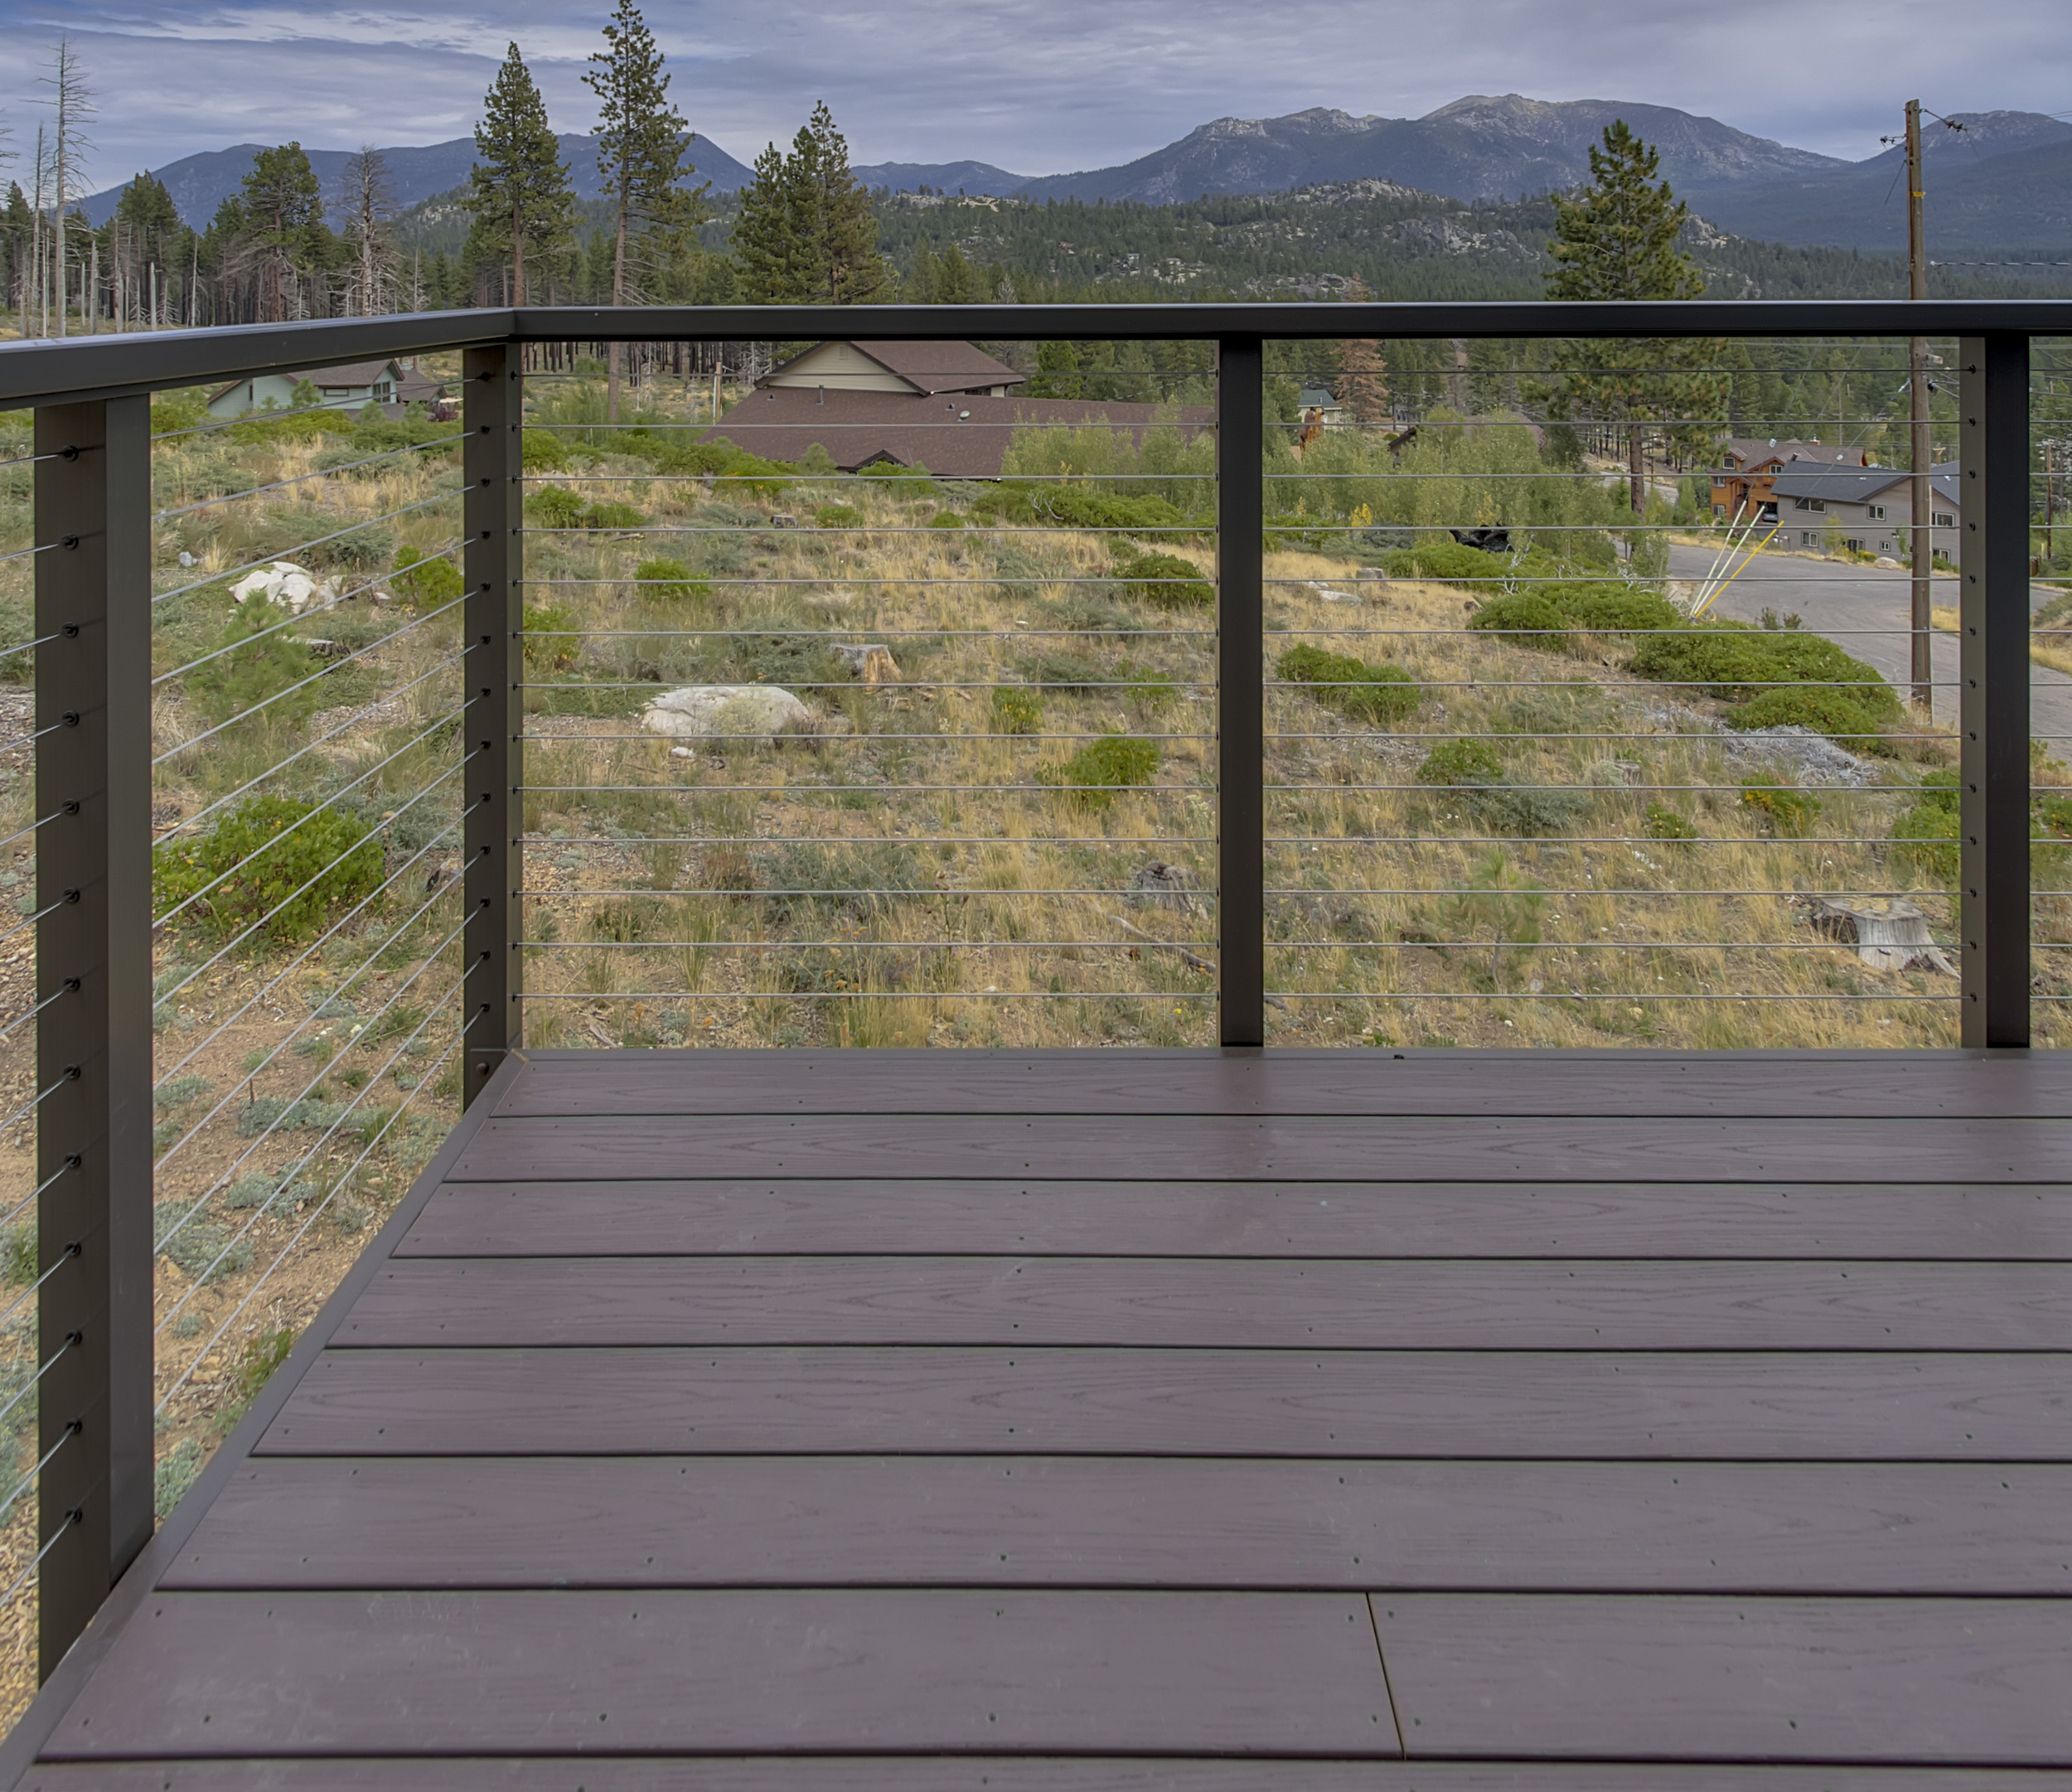 819 Lookout Point Cir. Print Res (10 of 17).jpg